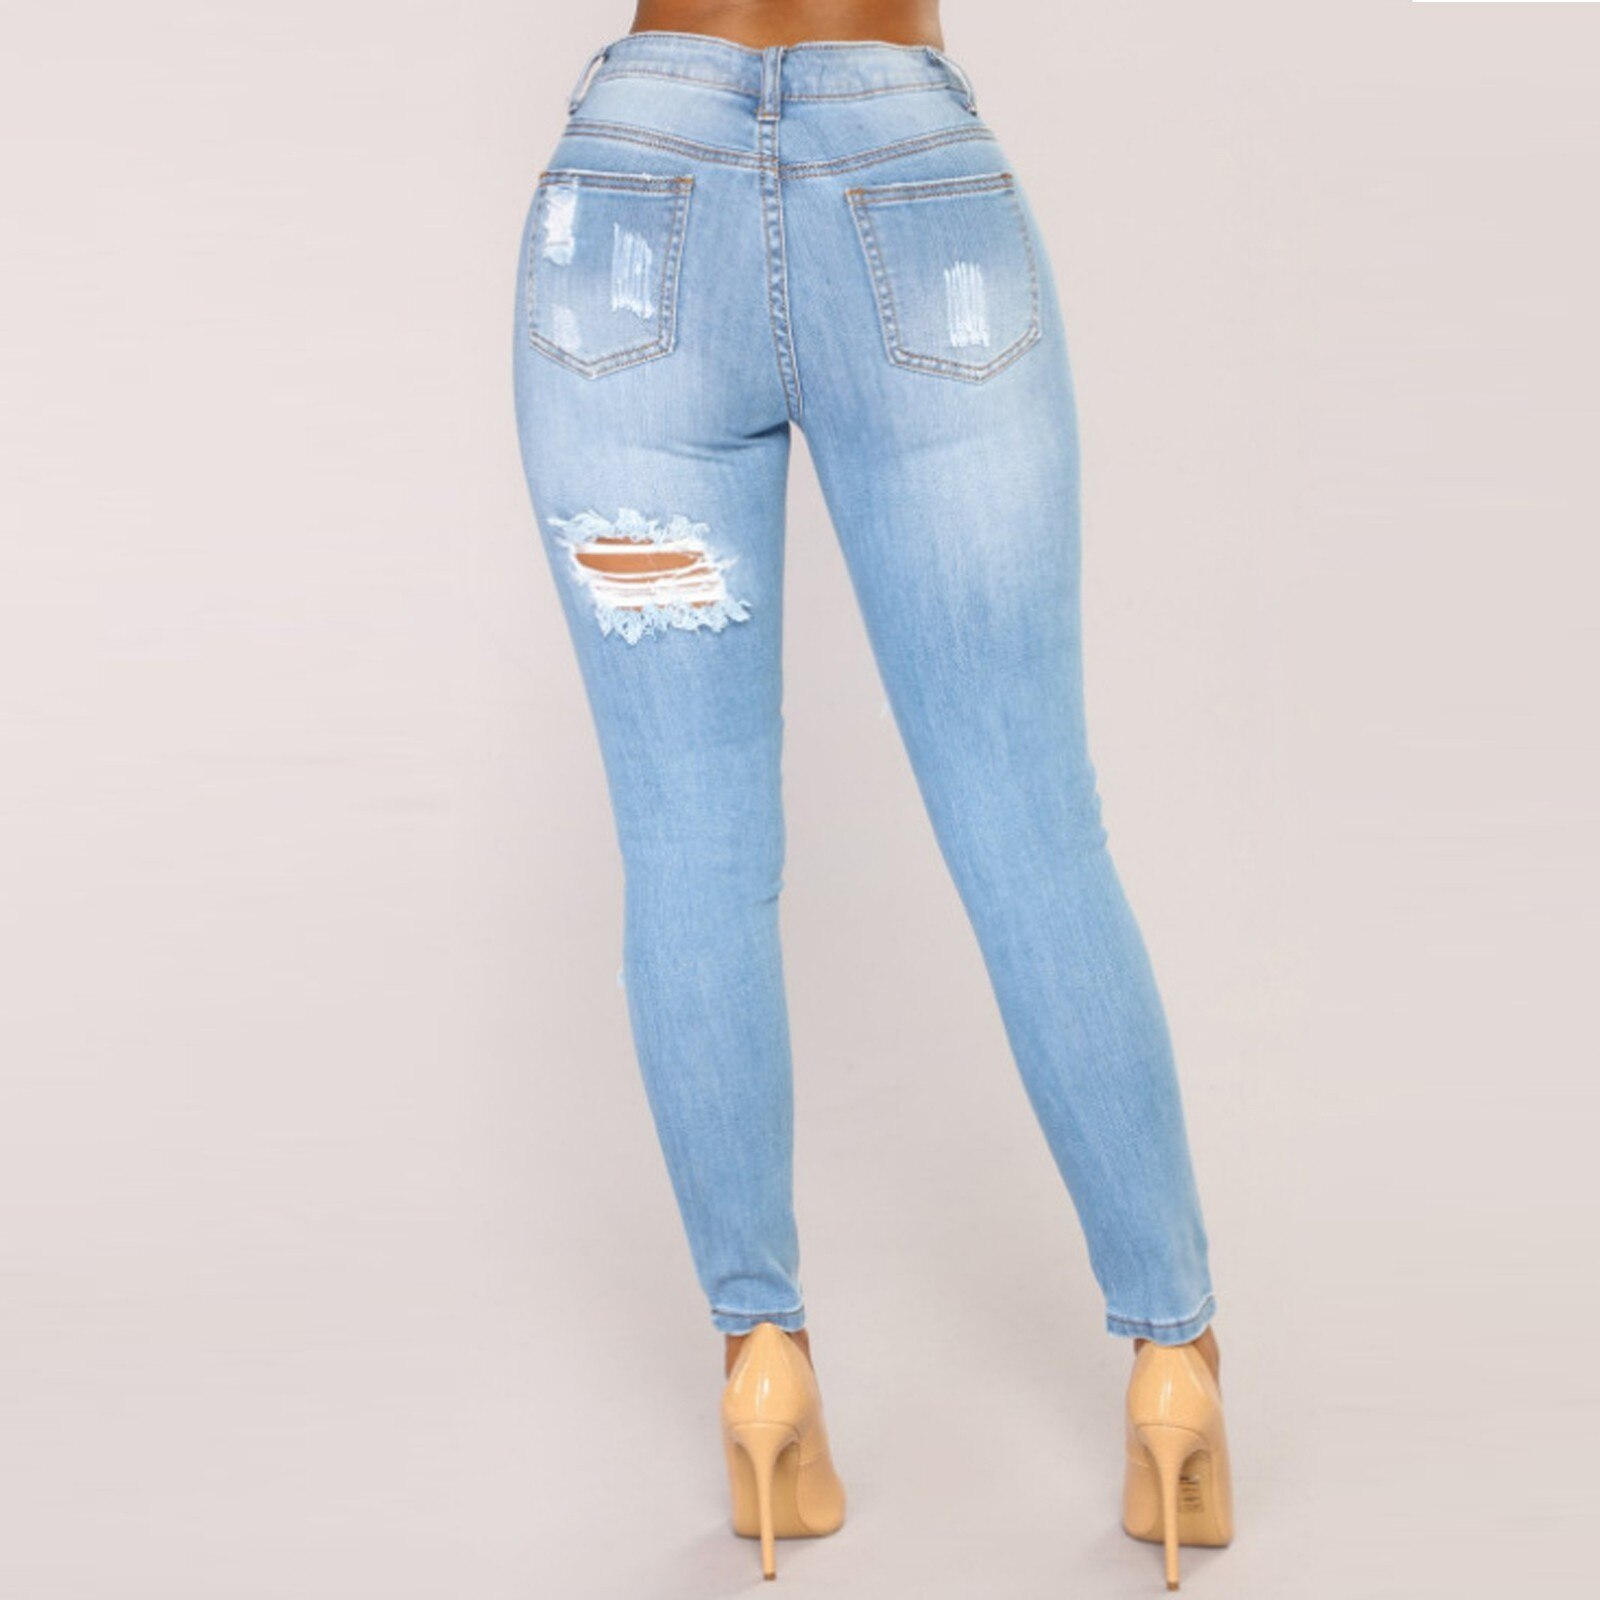 Female High Waist Ripped Jeans For Women's Fashion Sexy High Waist Torns Solid Skinny Jeans Long Pants 2021 Stright Trousers